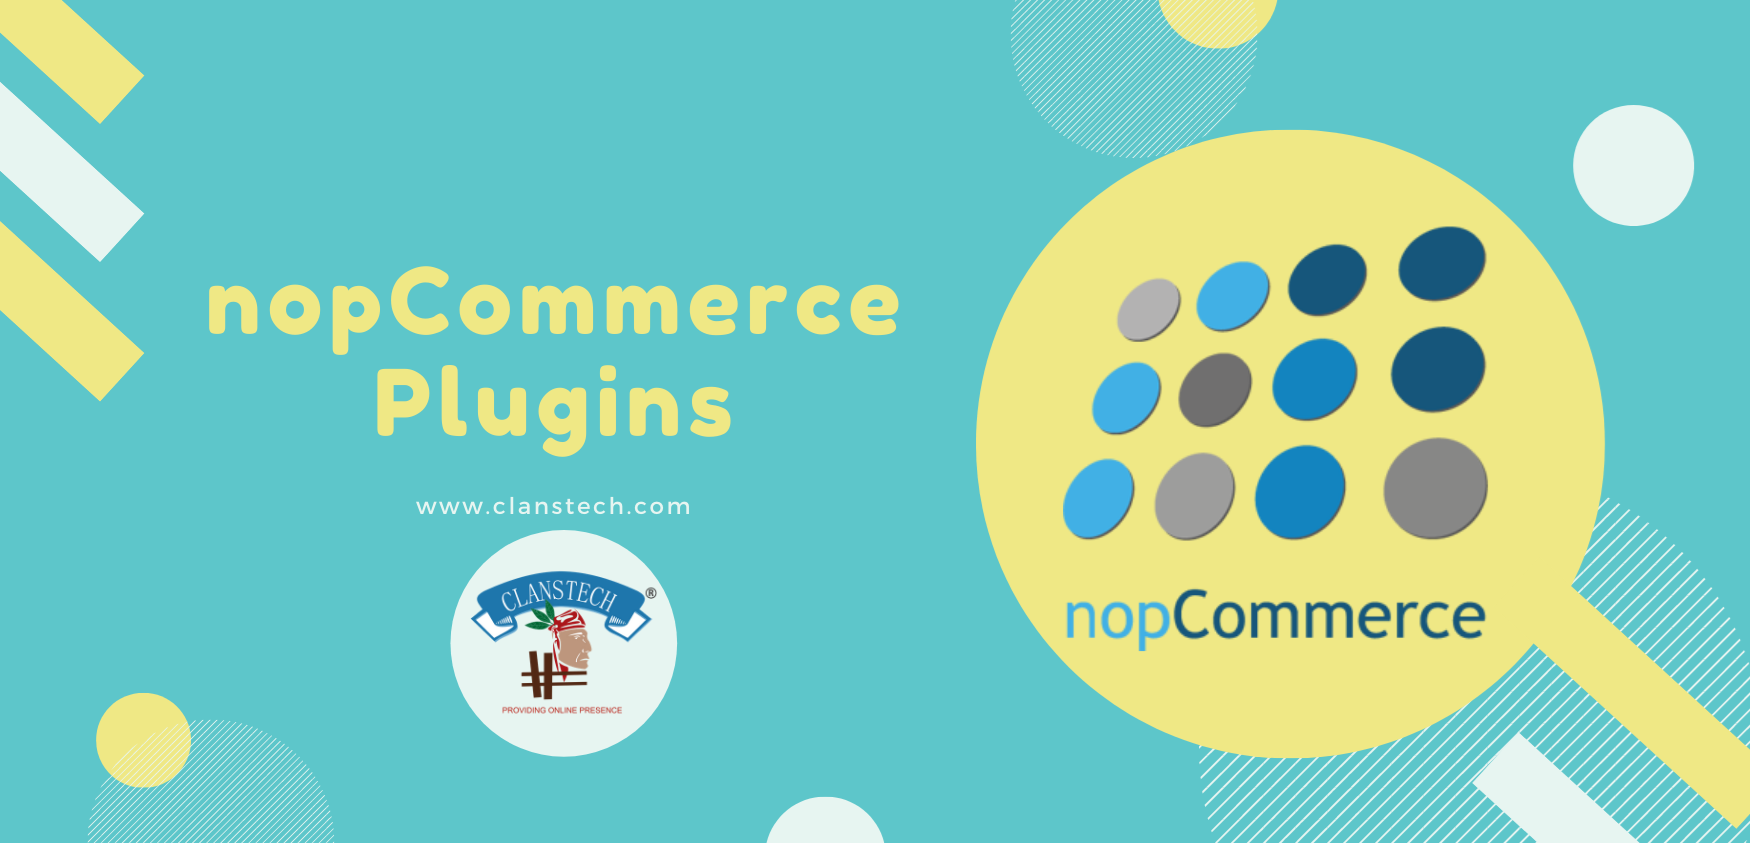 nopCommerce Plugins by Clanstech